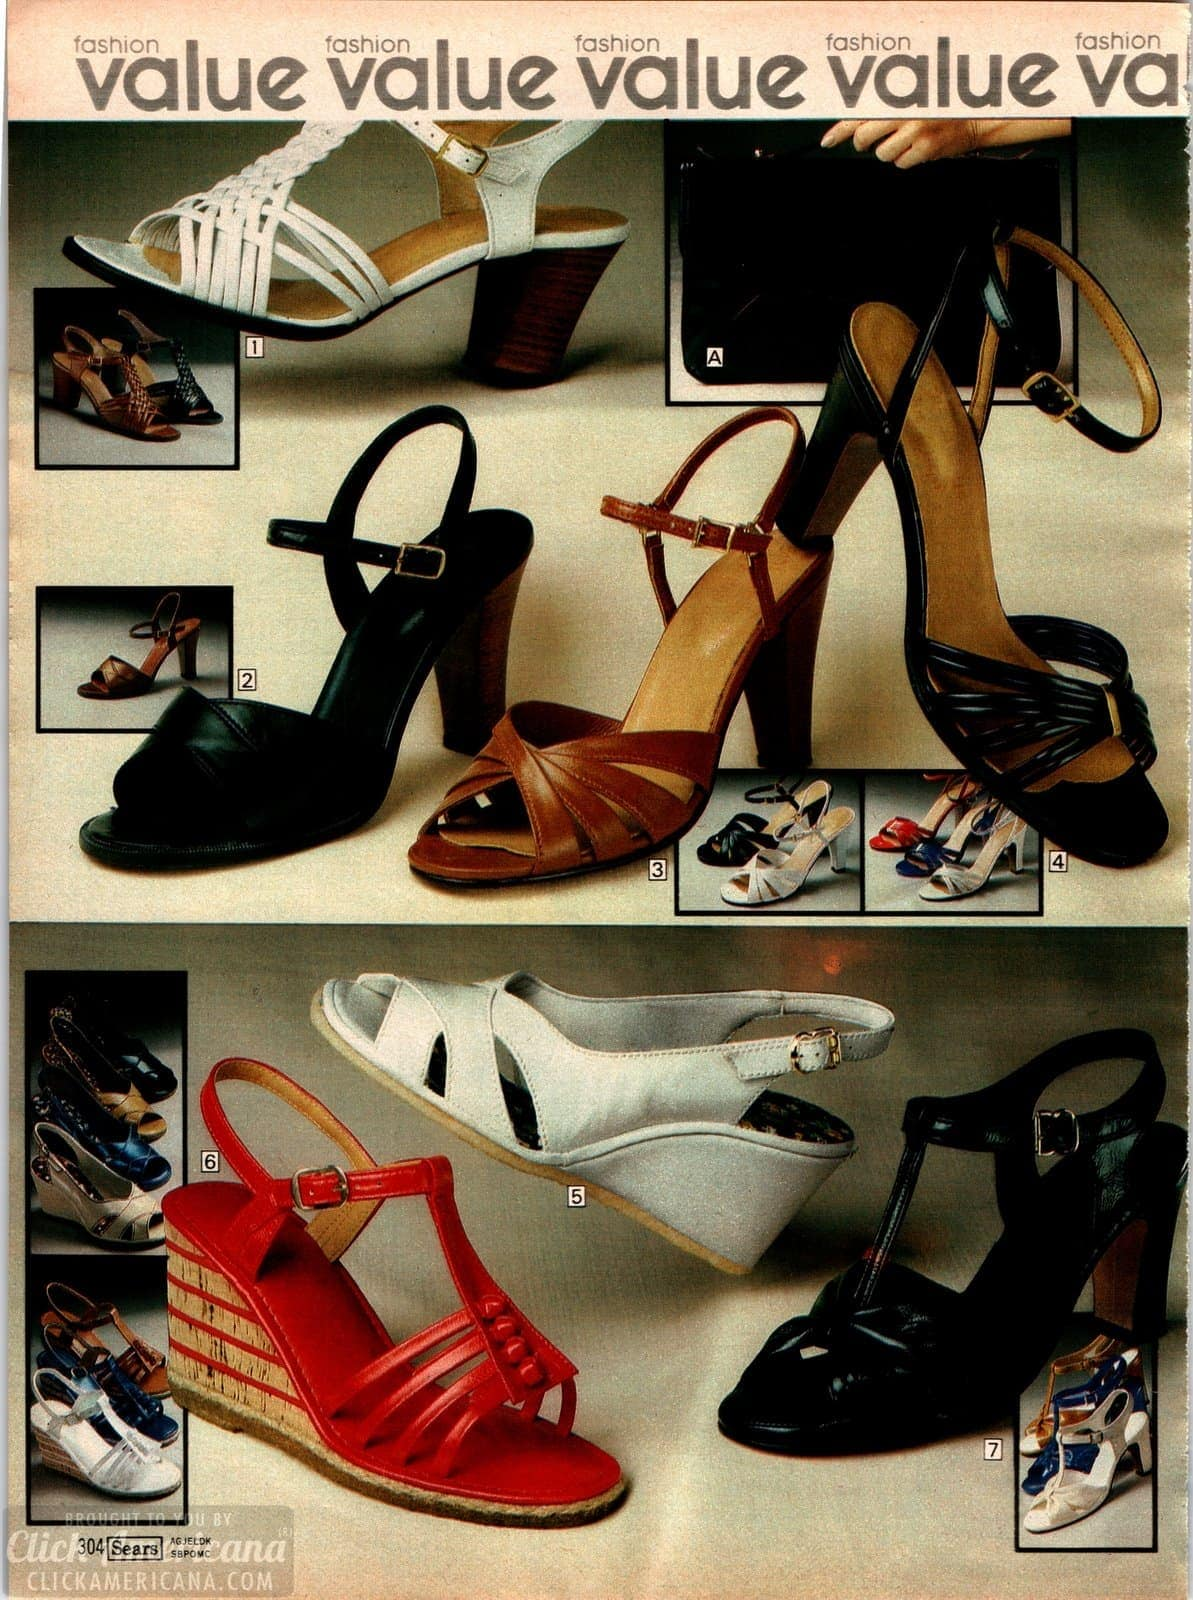 Retro high heel shoes with open toes and in 70s platform and pump styles